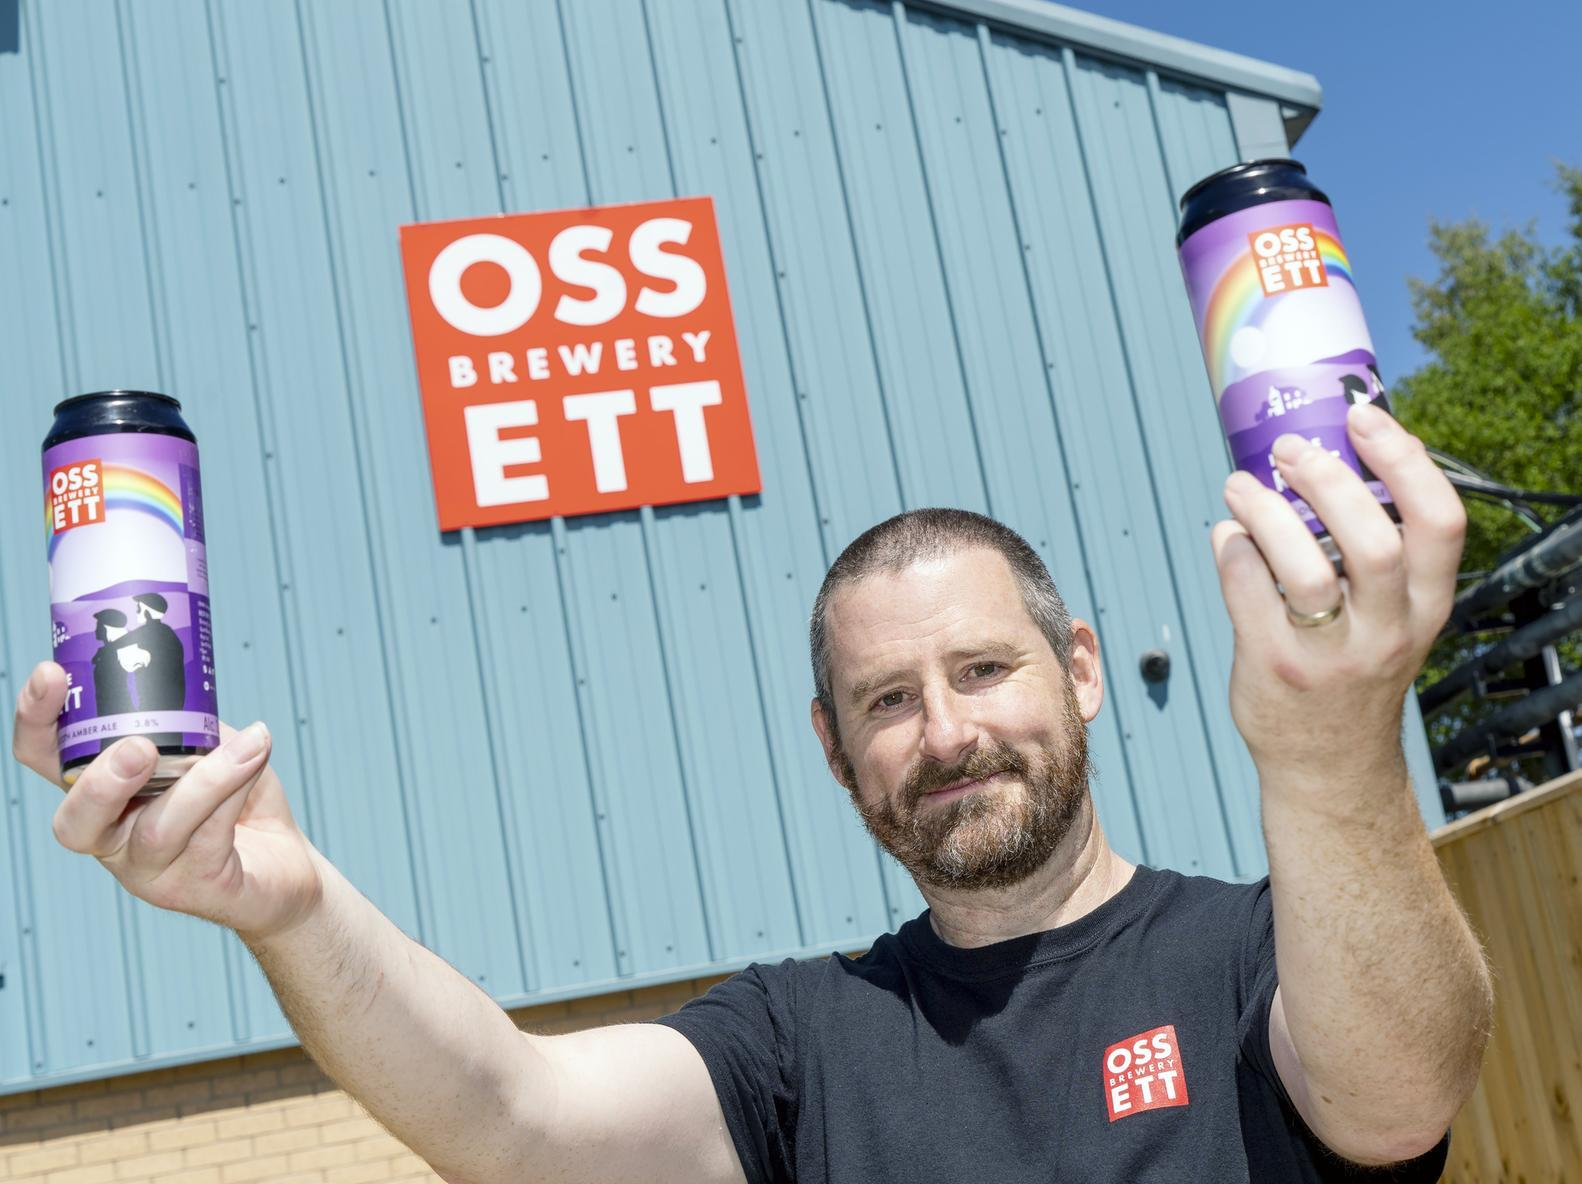 Ossett Brewery Launches 'it'll Be Reyt' photo